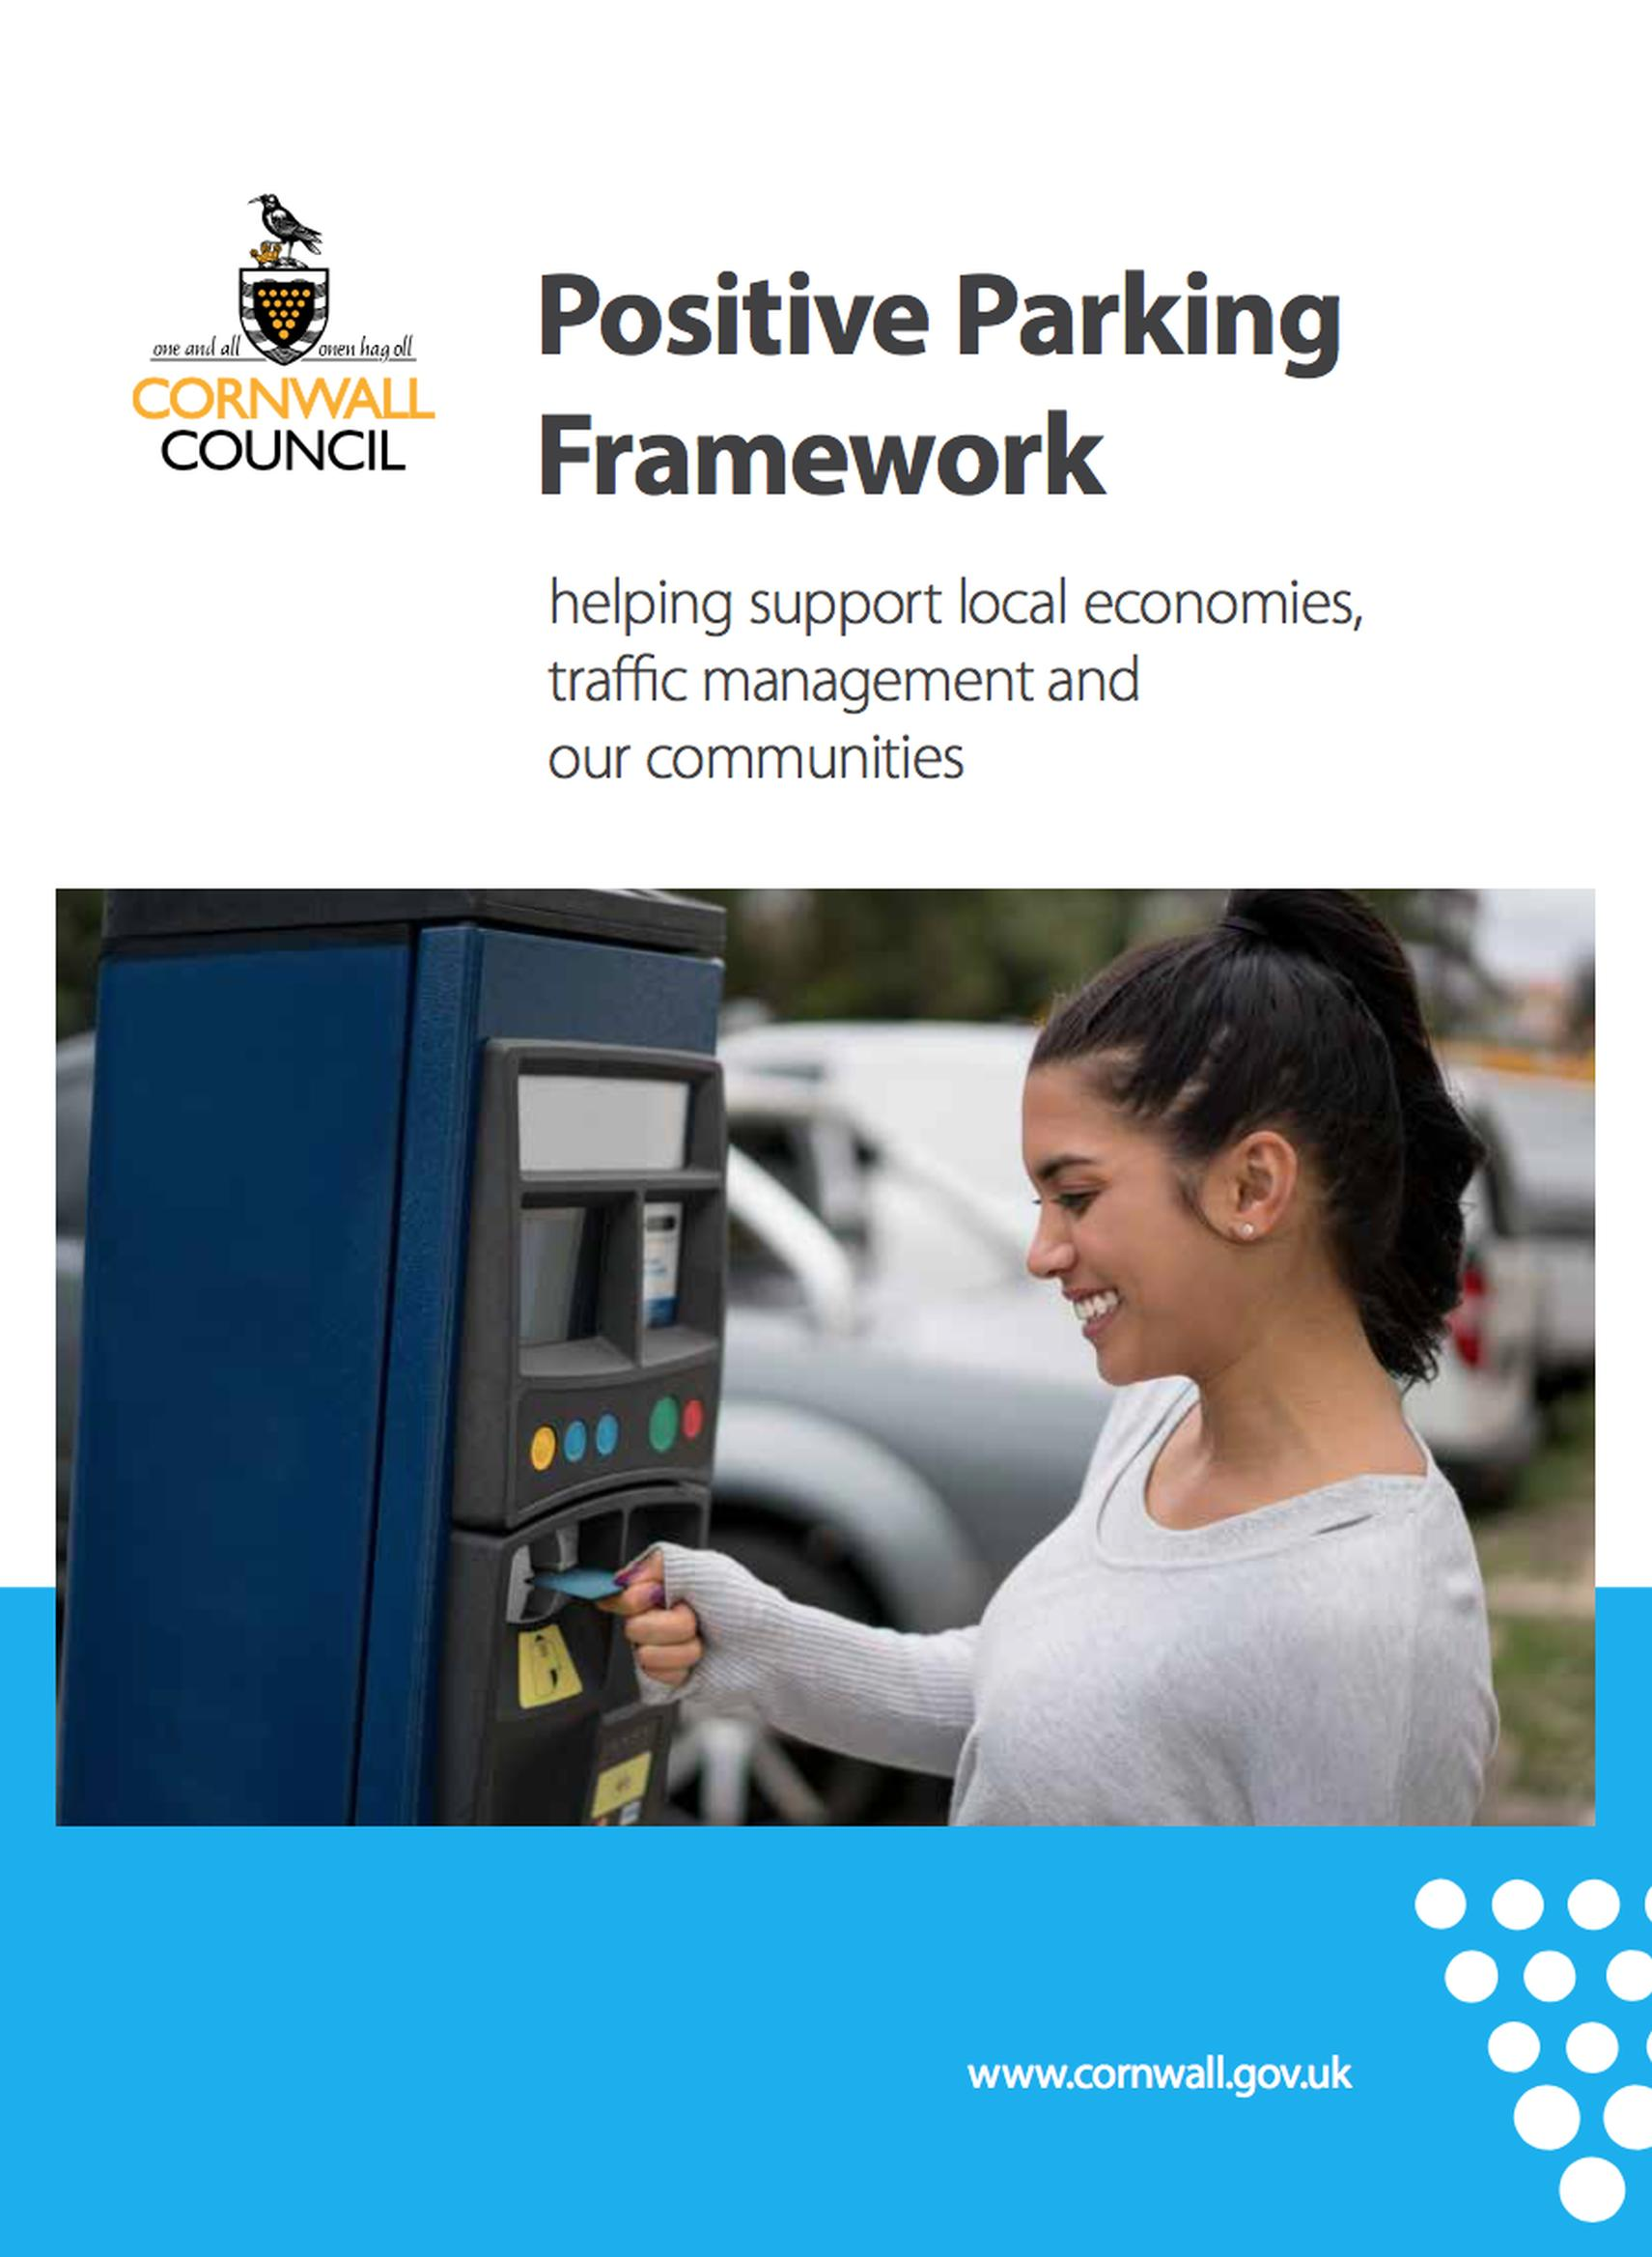 The Healthcare Permit Scheme is being introduced as part of Cornwall Council's Positive Parking Framework, which is set to be a benchmark standard for local authorities that have aligned their parking policies and operations to the Positive Parking Agenda